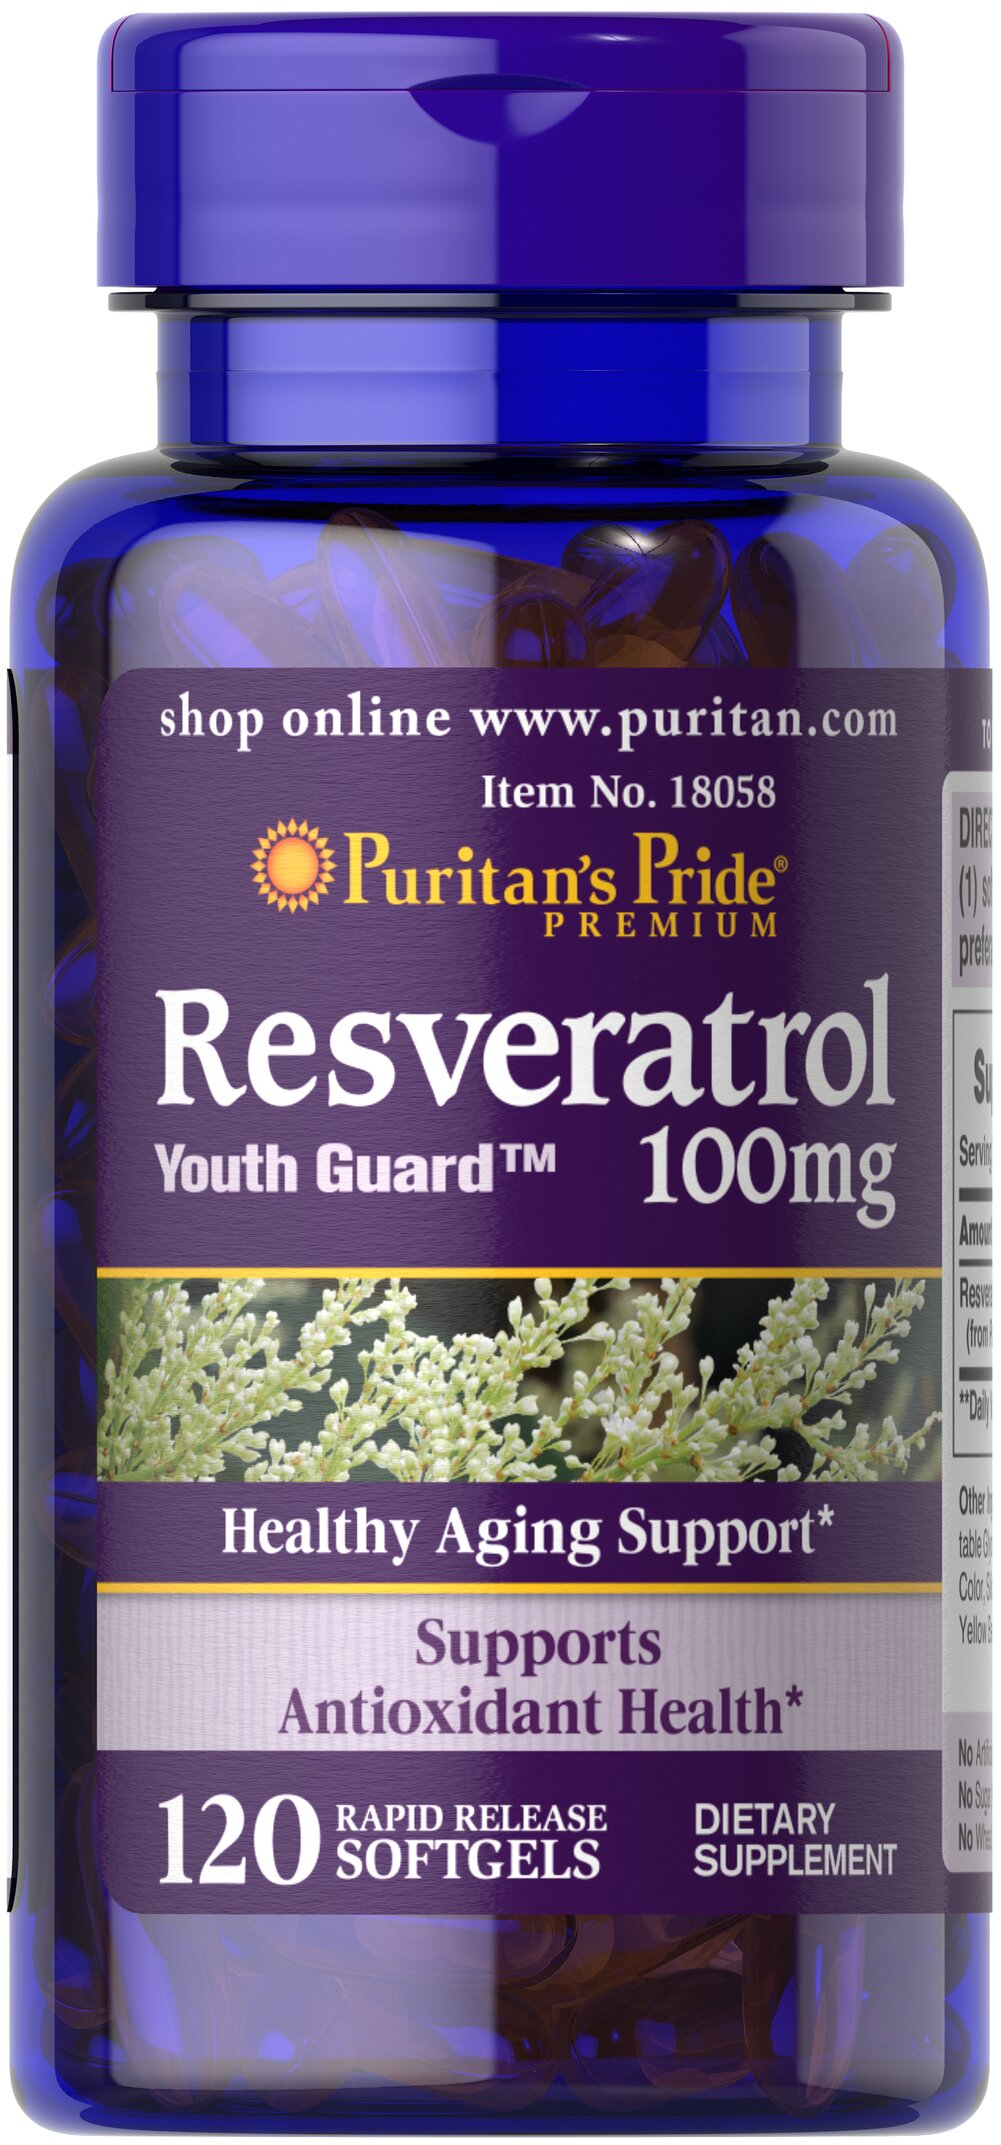 Resveratrol 100 mg <p>Resveratrol is a grape extract that contains flavonoids.</p> <p>Possesses antioxidant properties.**</p> <p>Helps fight the cell damaging effects of free radicals**</p> <p>One 100 mg softgel contains more resveratrol than an entire bottle of red wine. </p> 120 Softgels 100 mg $27.99